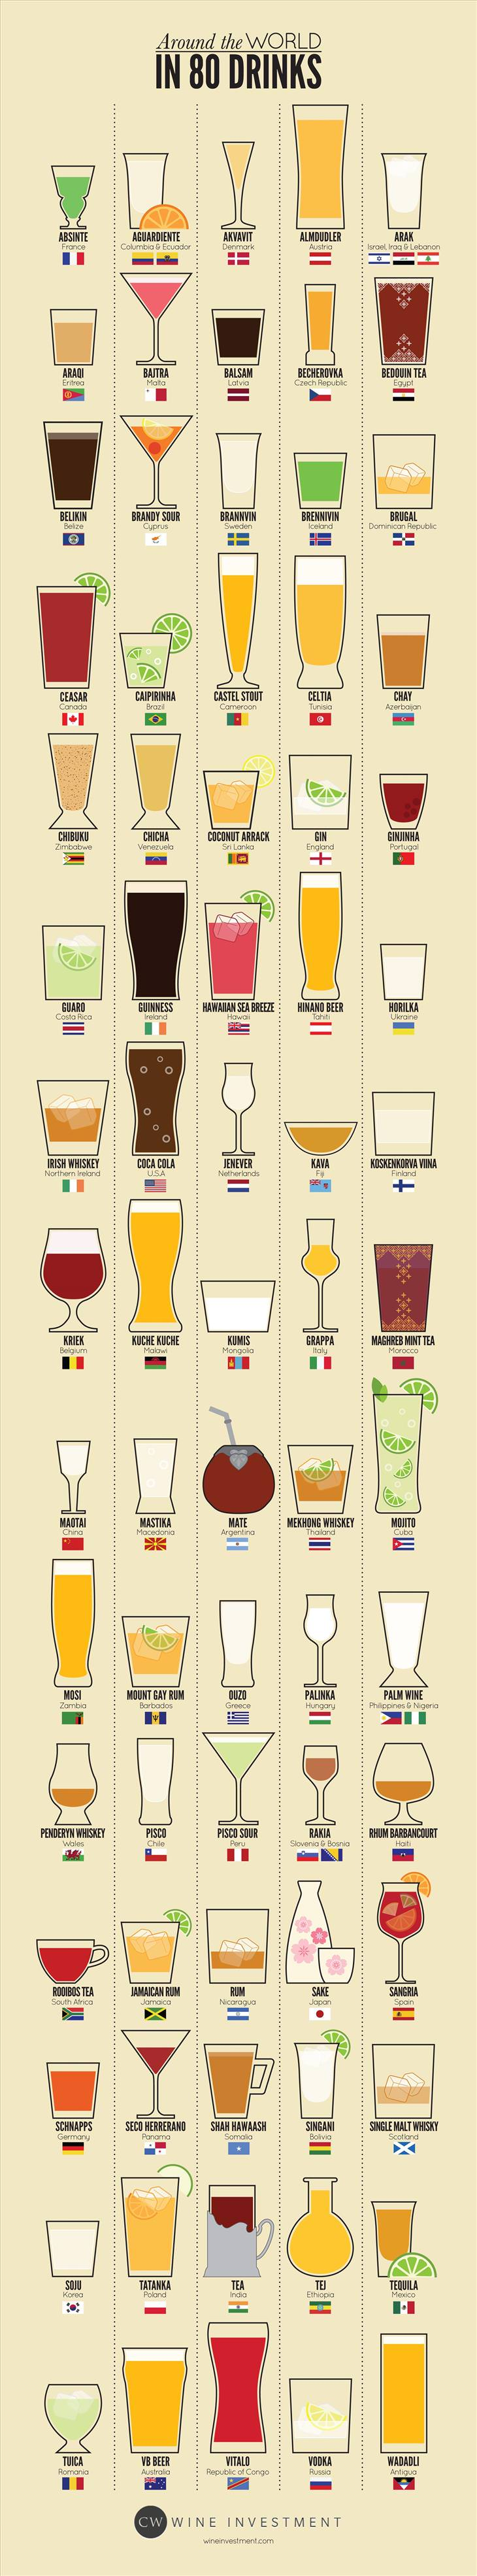 80 drinks infograpic